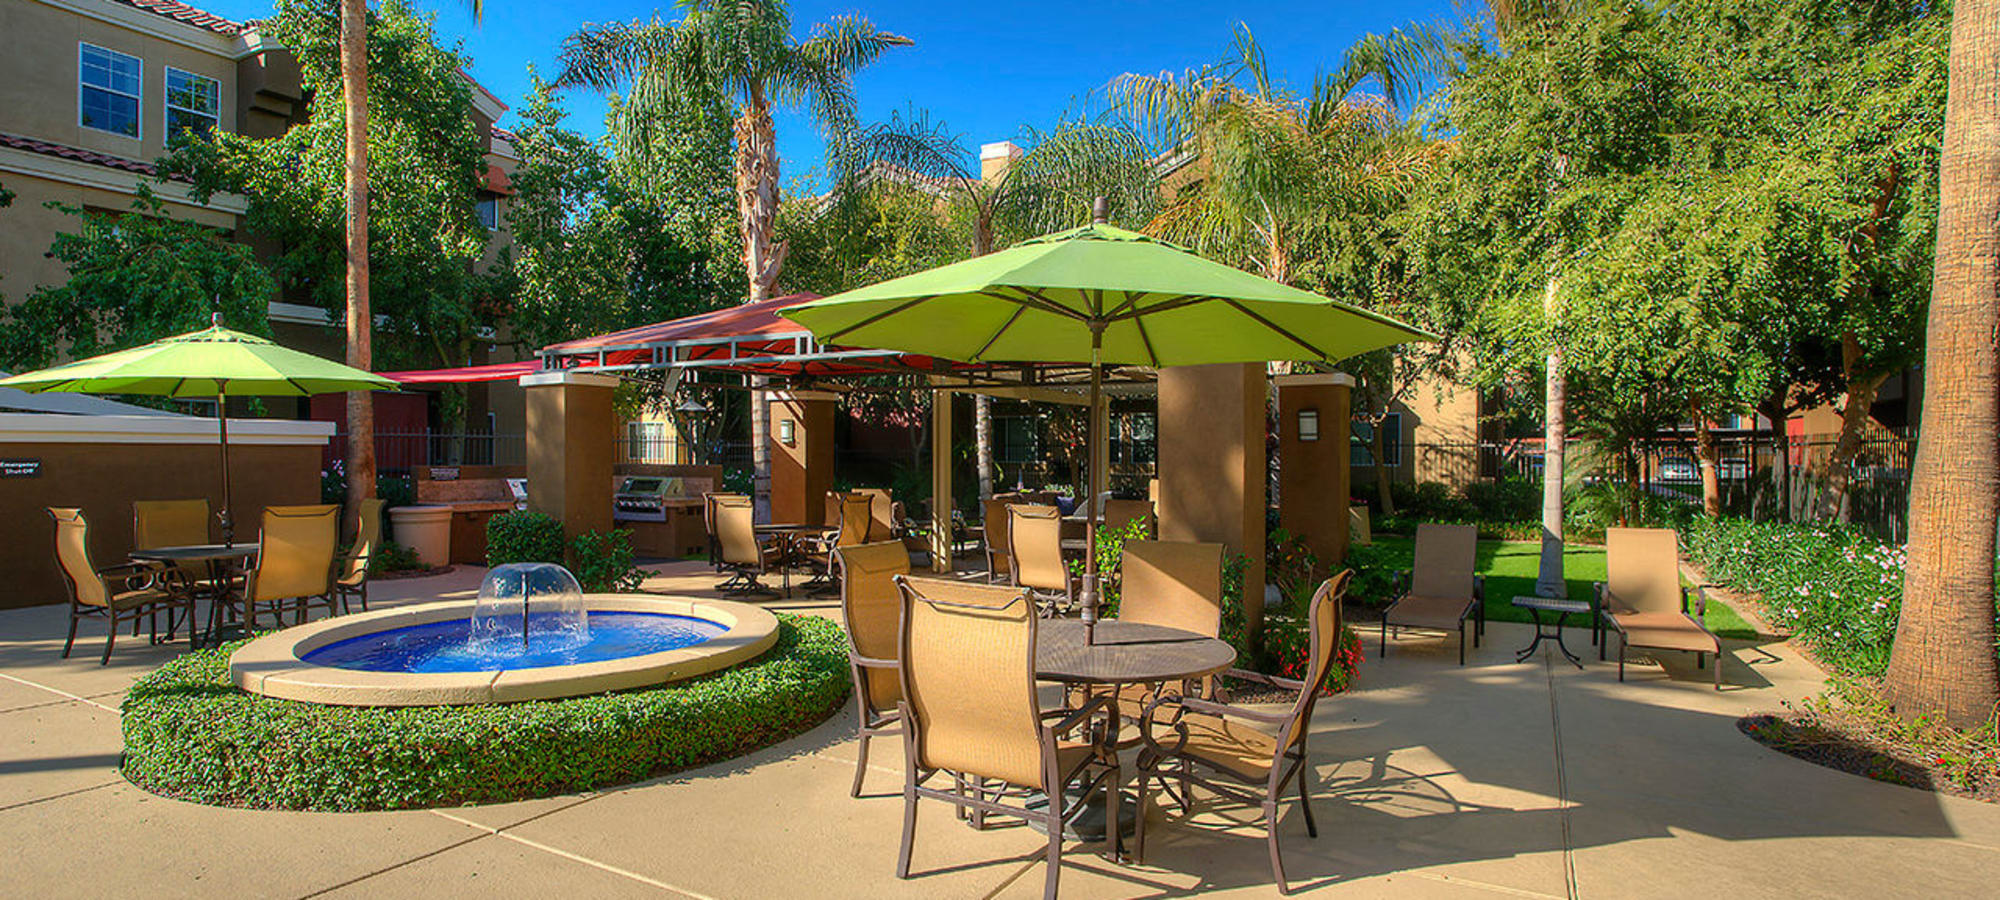 Gorgeous outdoor patio seating by the swimming pool at Park on Bell in Phoenix, Arizona